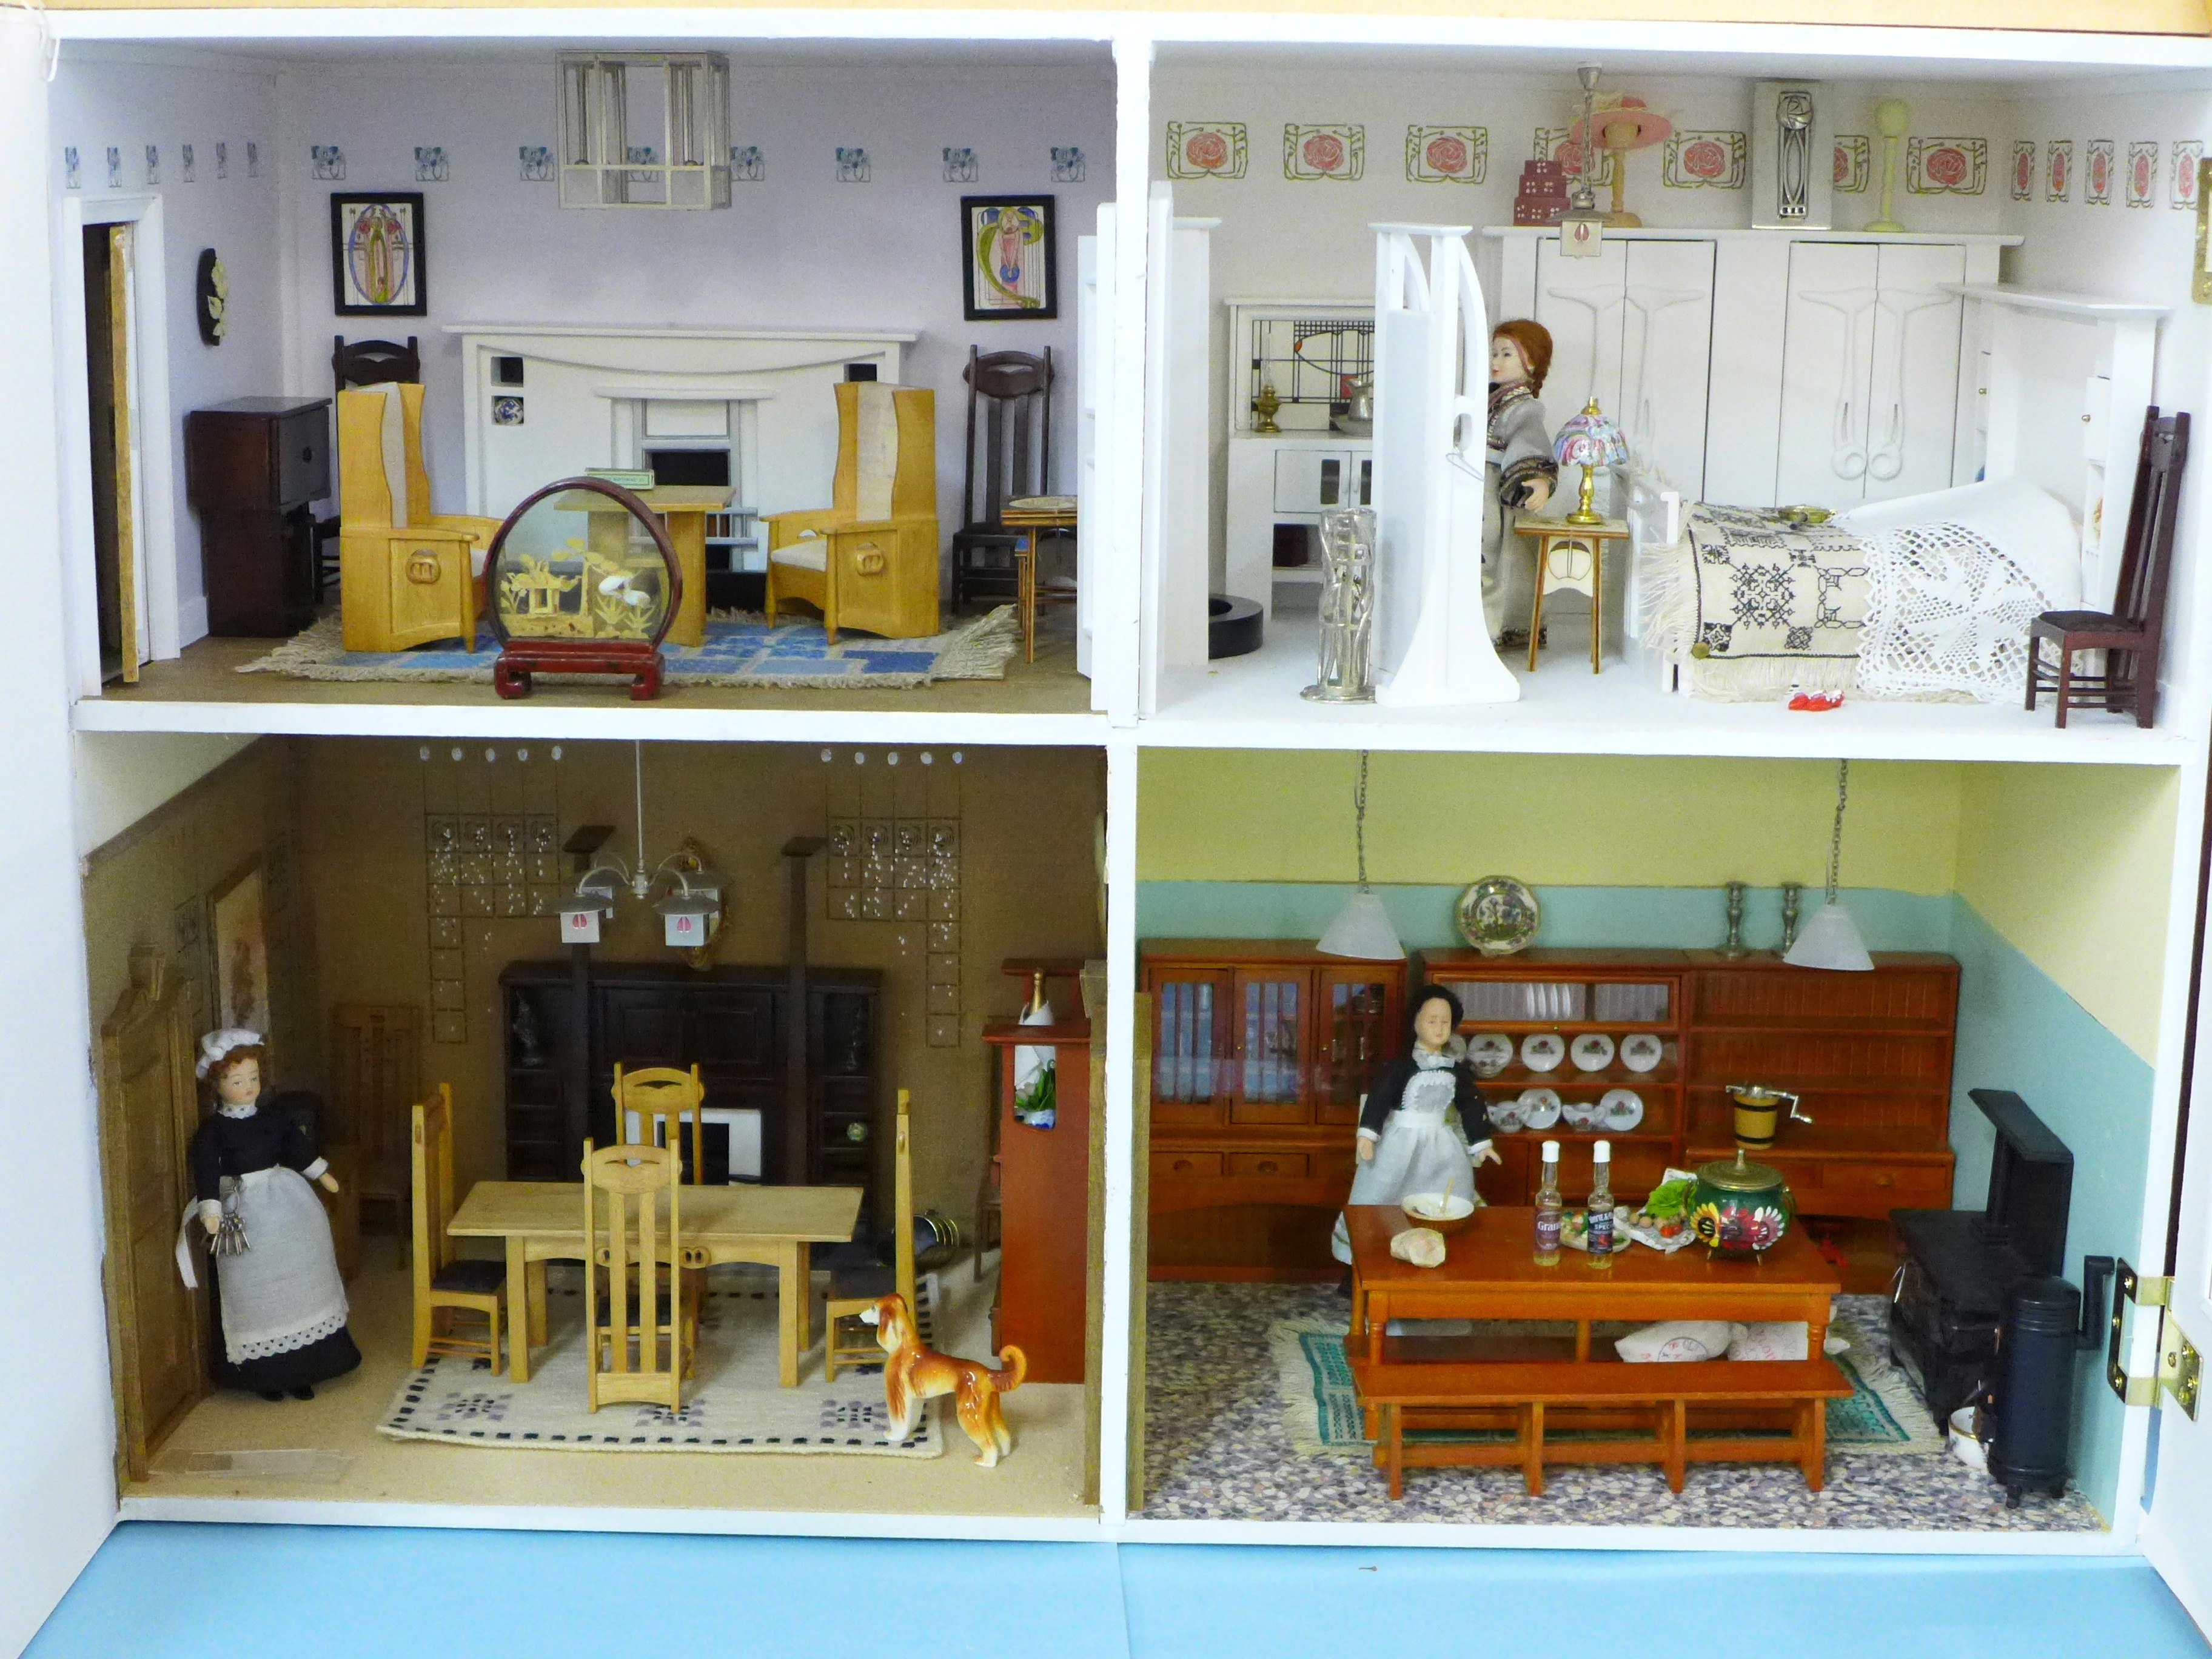 A Dolls House Emporiun Charles Rennie Makintosh-style Scottish House and Furniture. Assembled from a